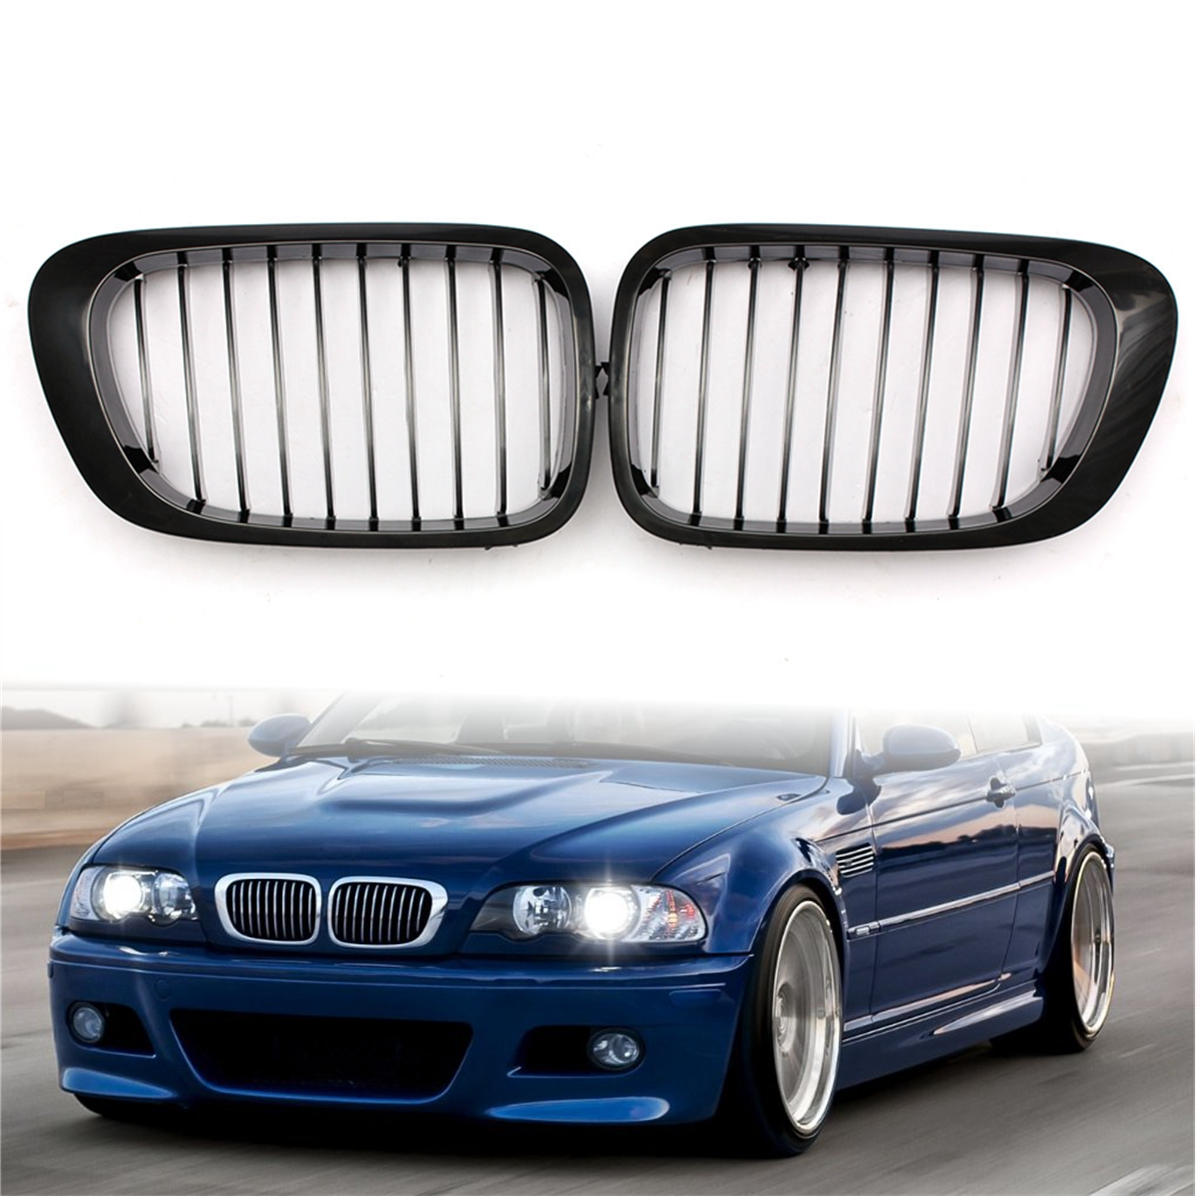 Pair Gloss Black Front Kidney Grill Grille for BMW E46 3-Series 325Ci 330Ci 323Ci 328Ci Car Racing Grills все цены